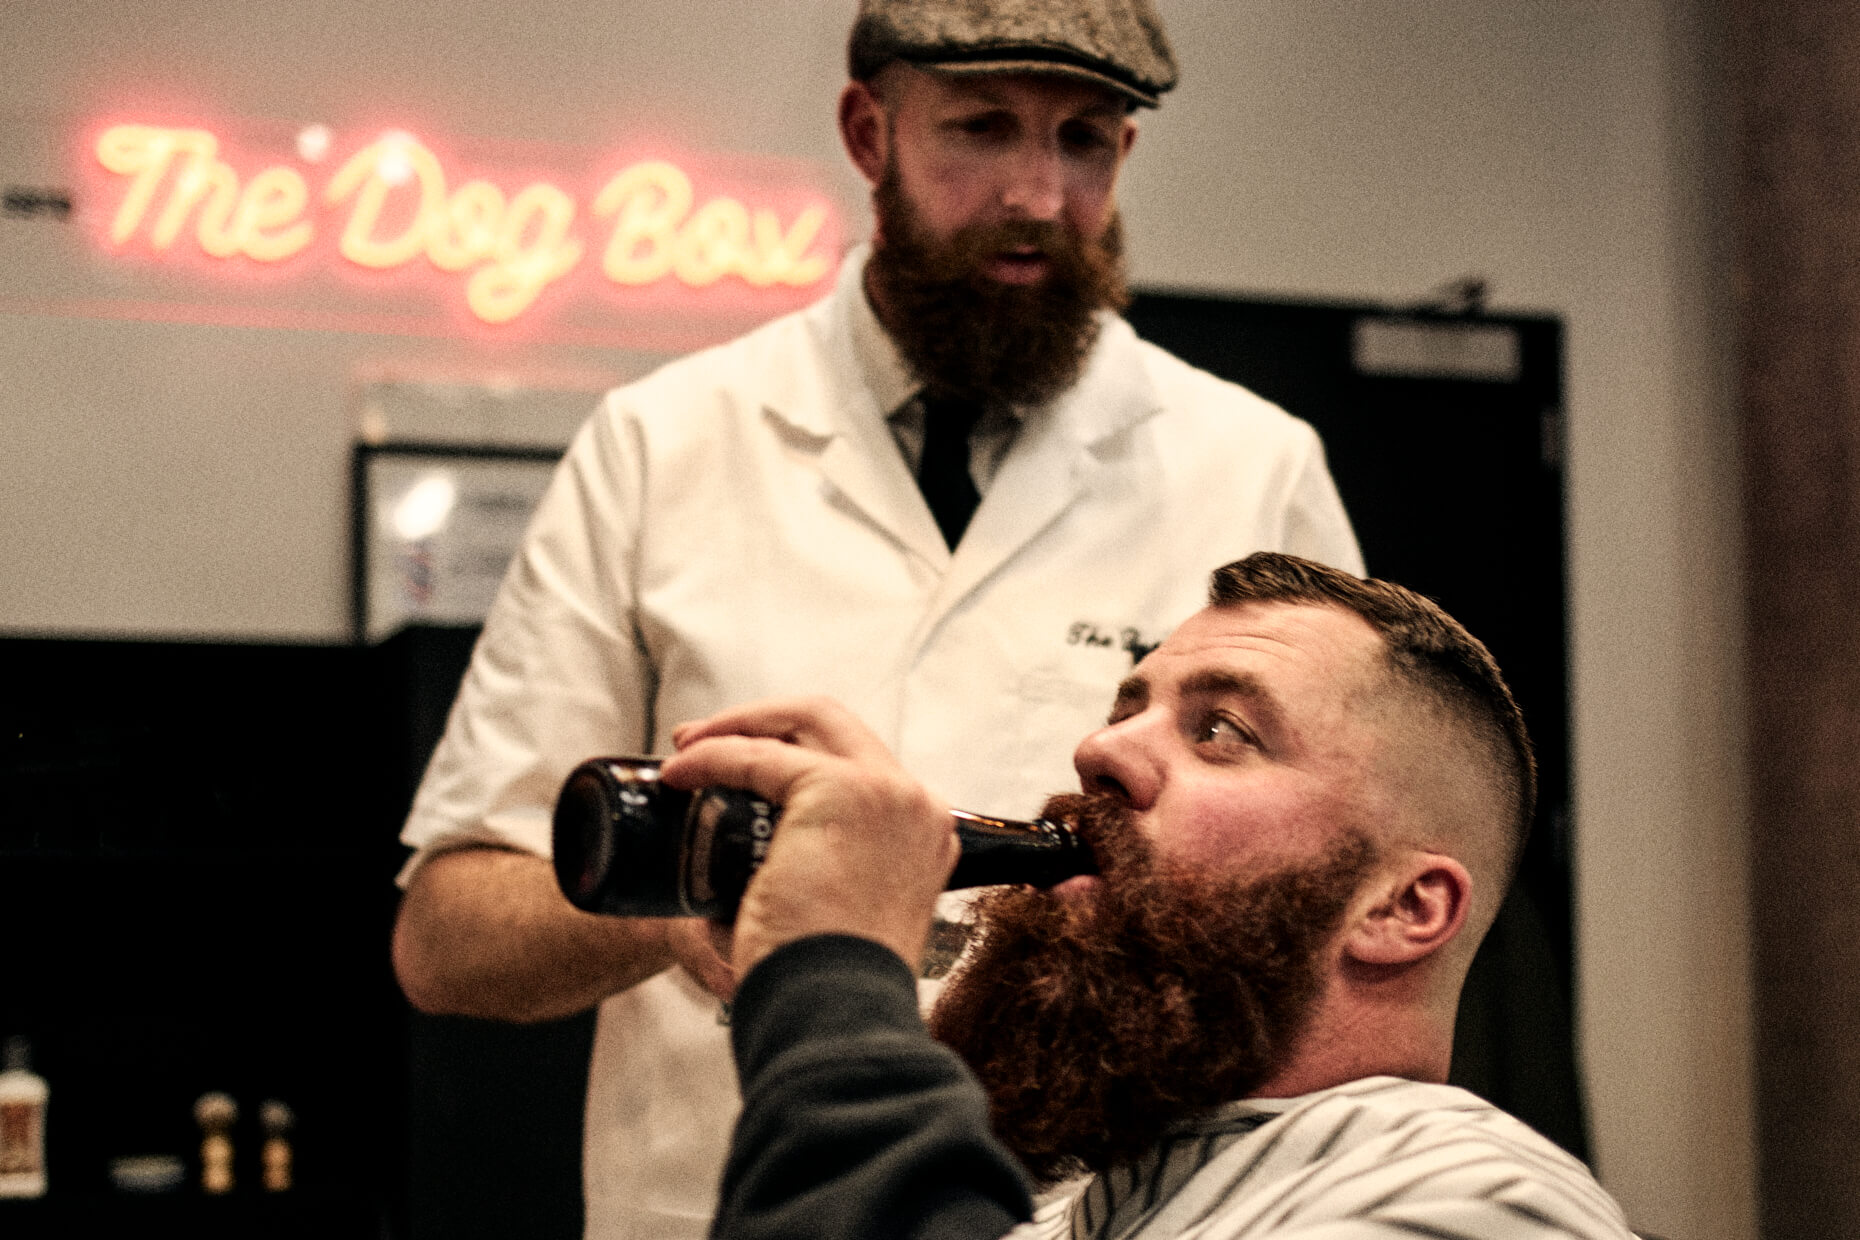 The_Dog_Box_Barbershop_20